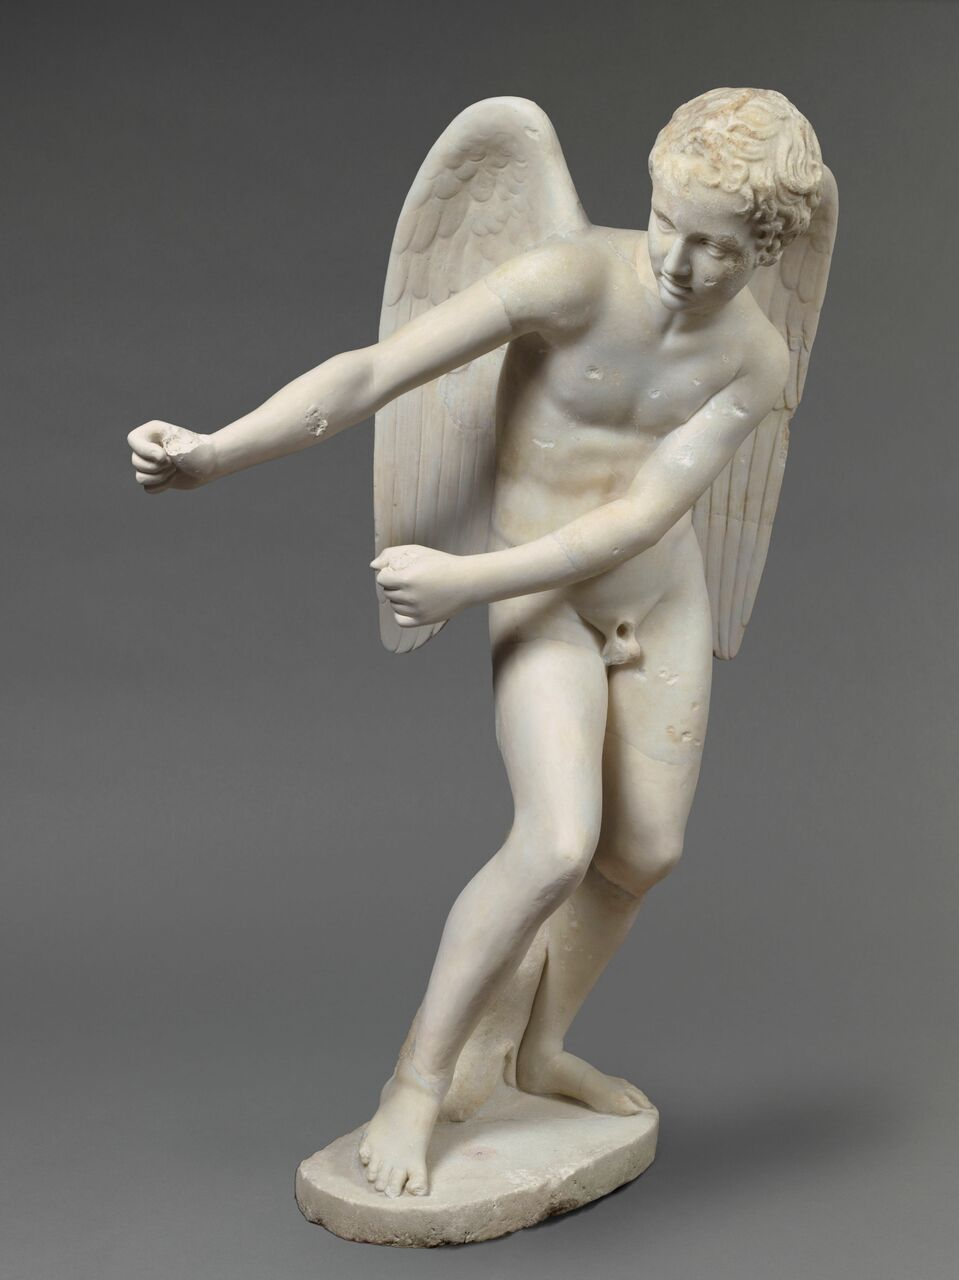 Eros Stringing his Bow- 2nd century AD, Marble, Louvre Museum, MA 448 (MR 139) © RMN–Grand Palais / Art Resource, NY